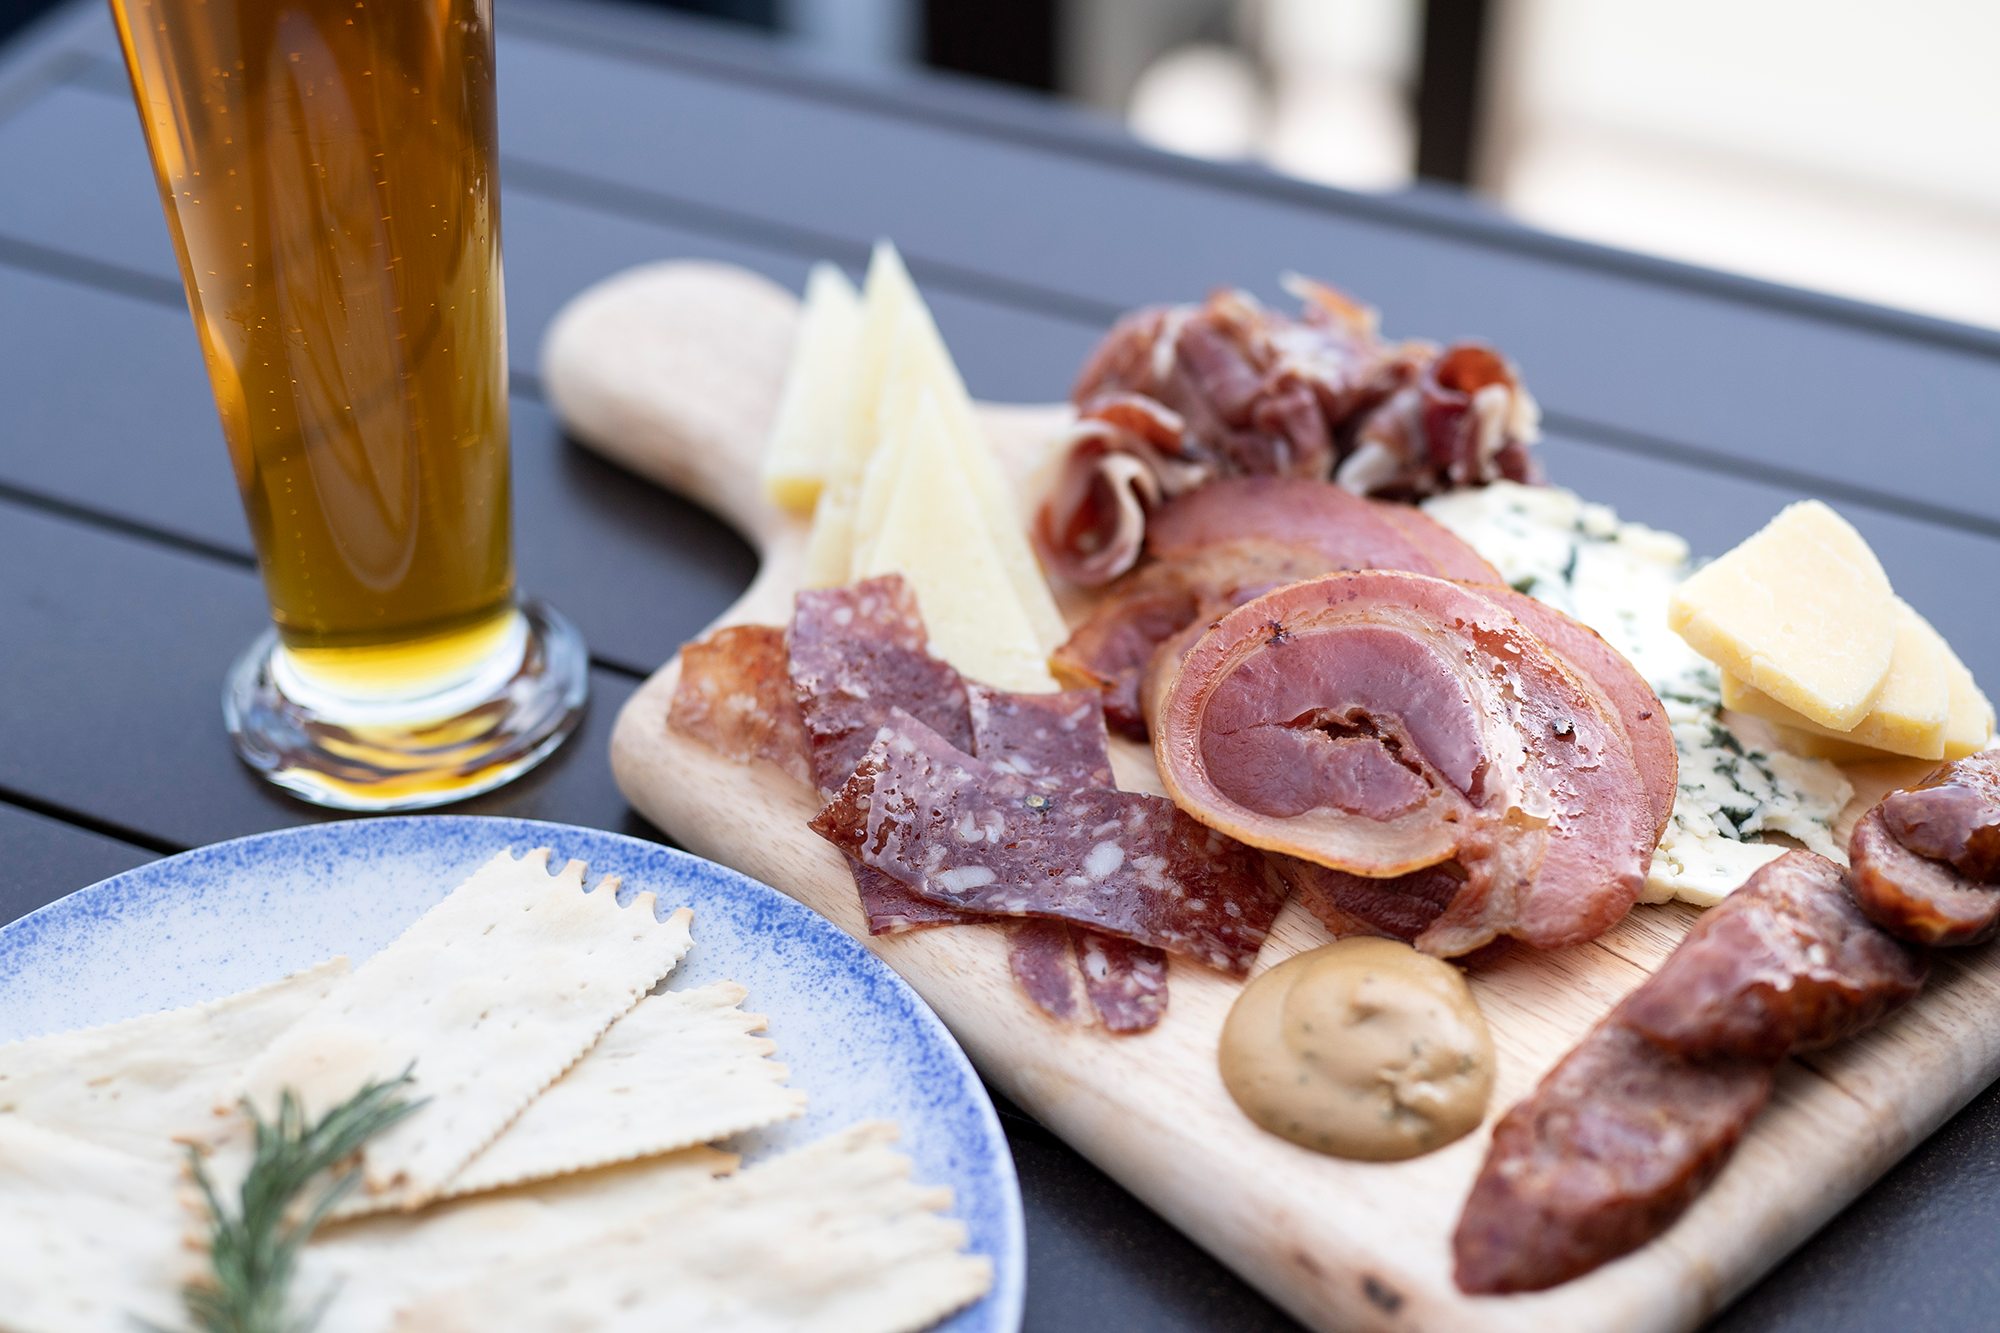 10th and Terrace at Residence Inn Raleigh Downtown - Charcuterie